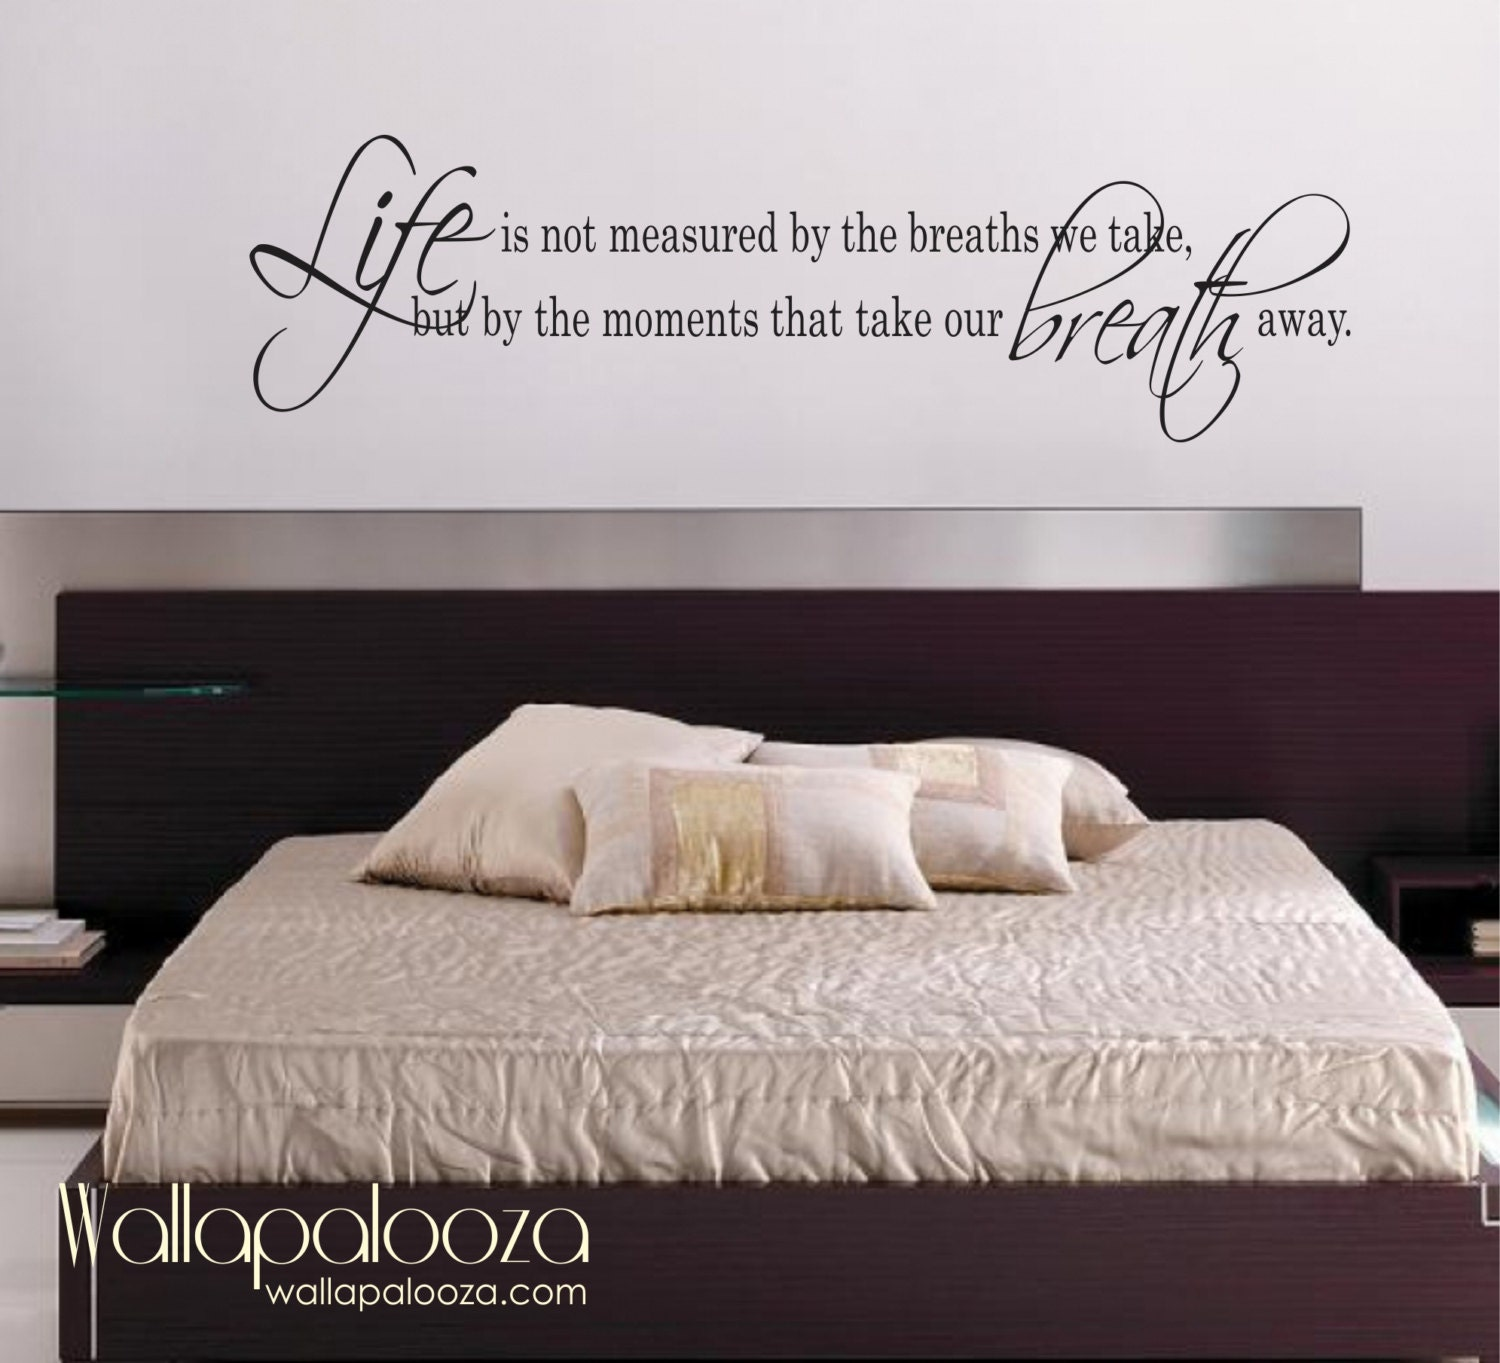 Love Wall Quotes Classy Life Is Not Measured Wall Decal Love Wall Decal Bedroom